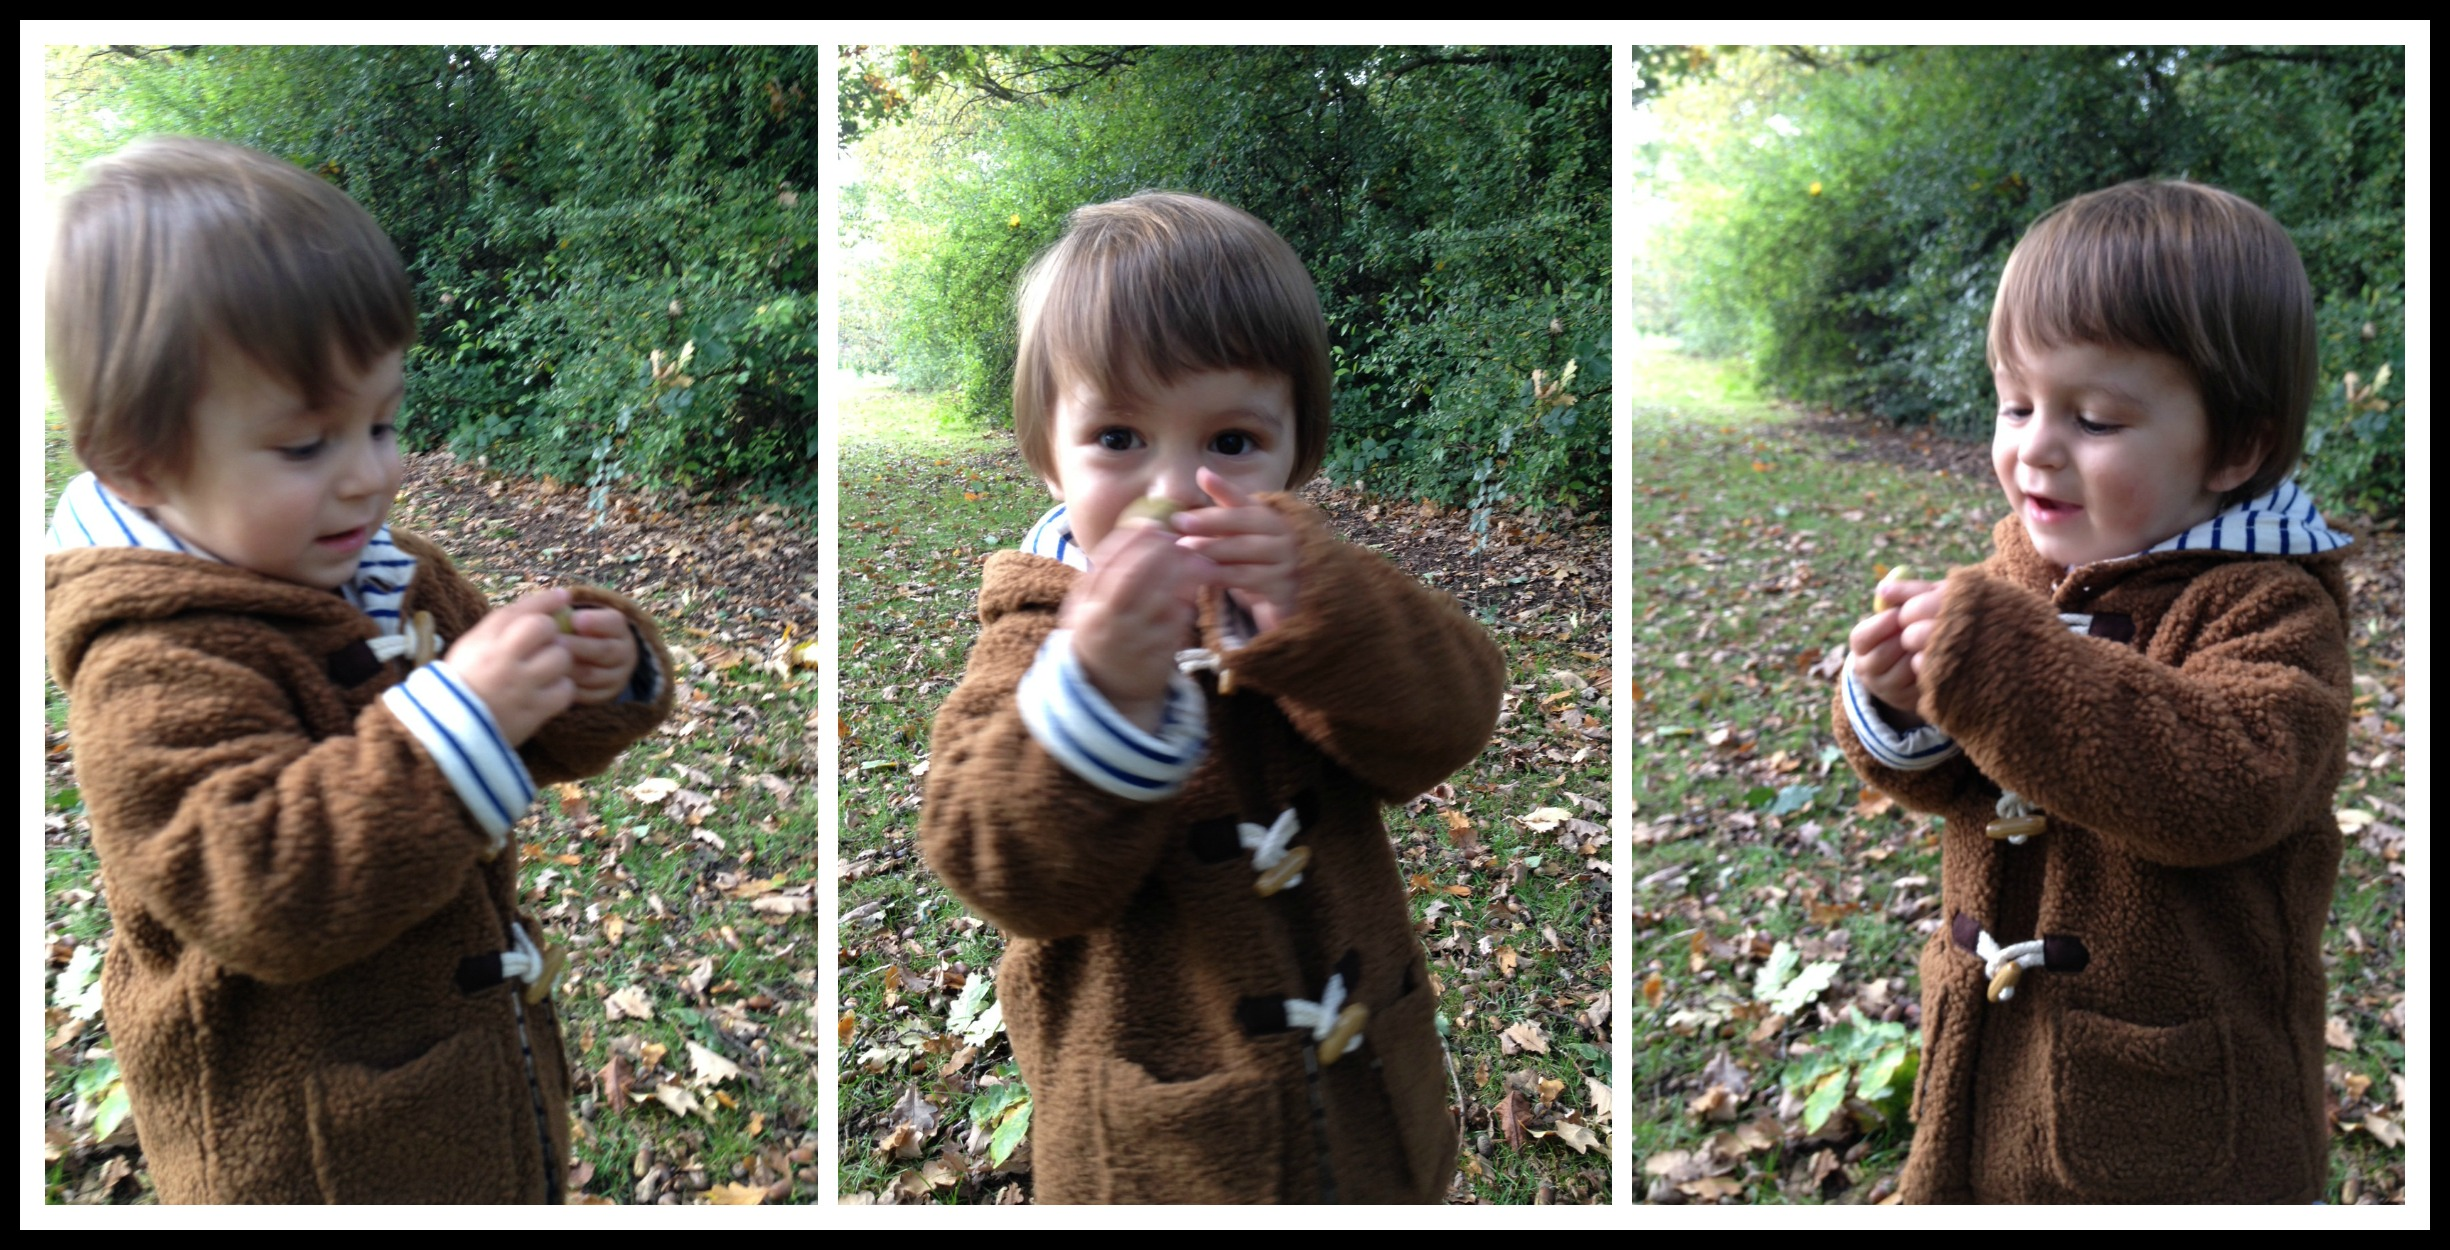 Acorns - our autumn obsession